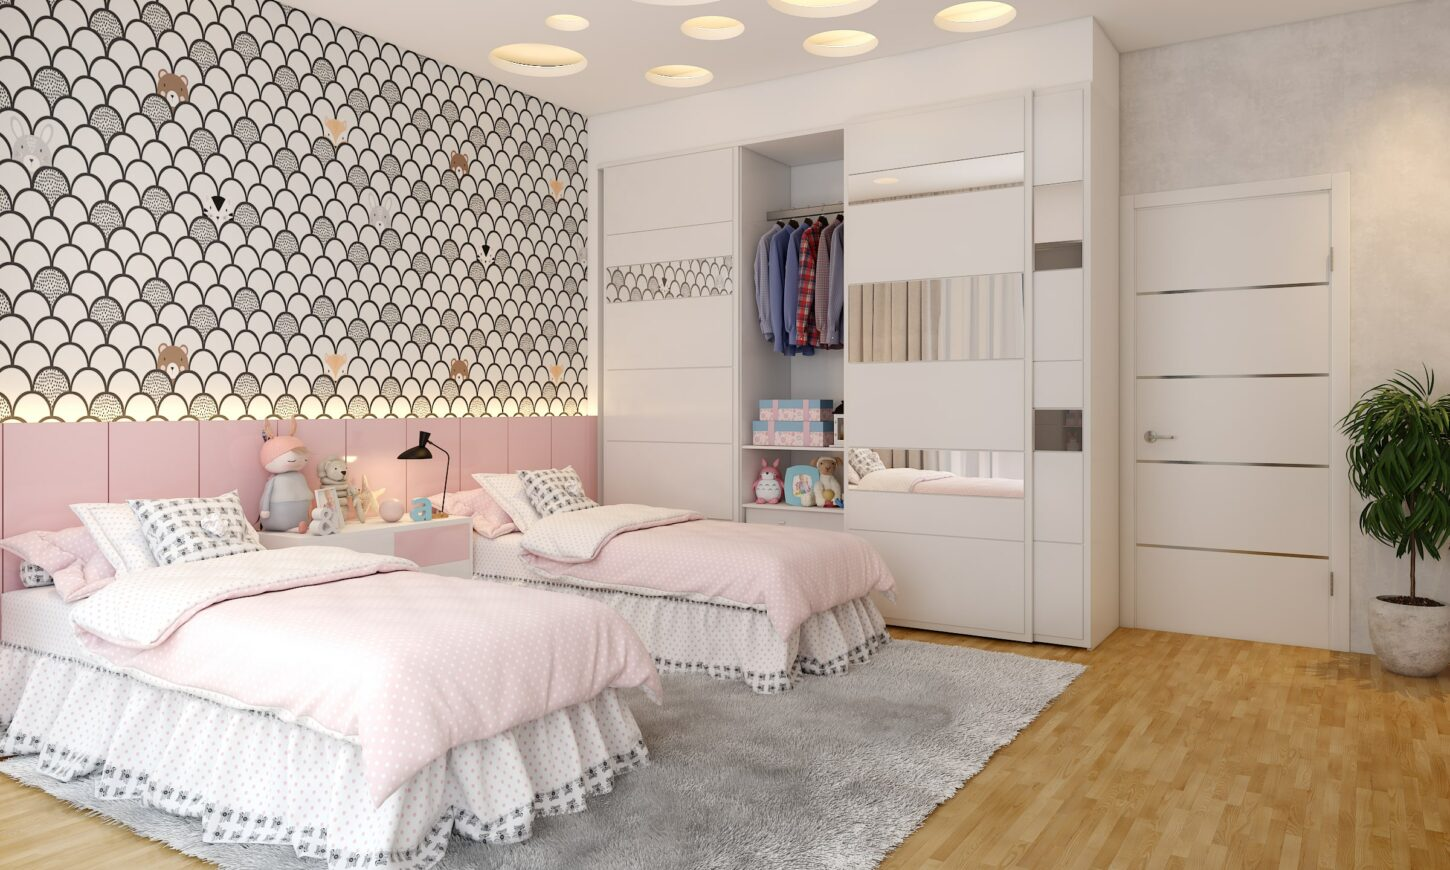 3bhk villa modern classic kids bedroom design of harsh johari in bengaluru sarjapur project done by design cafe